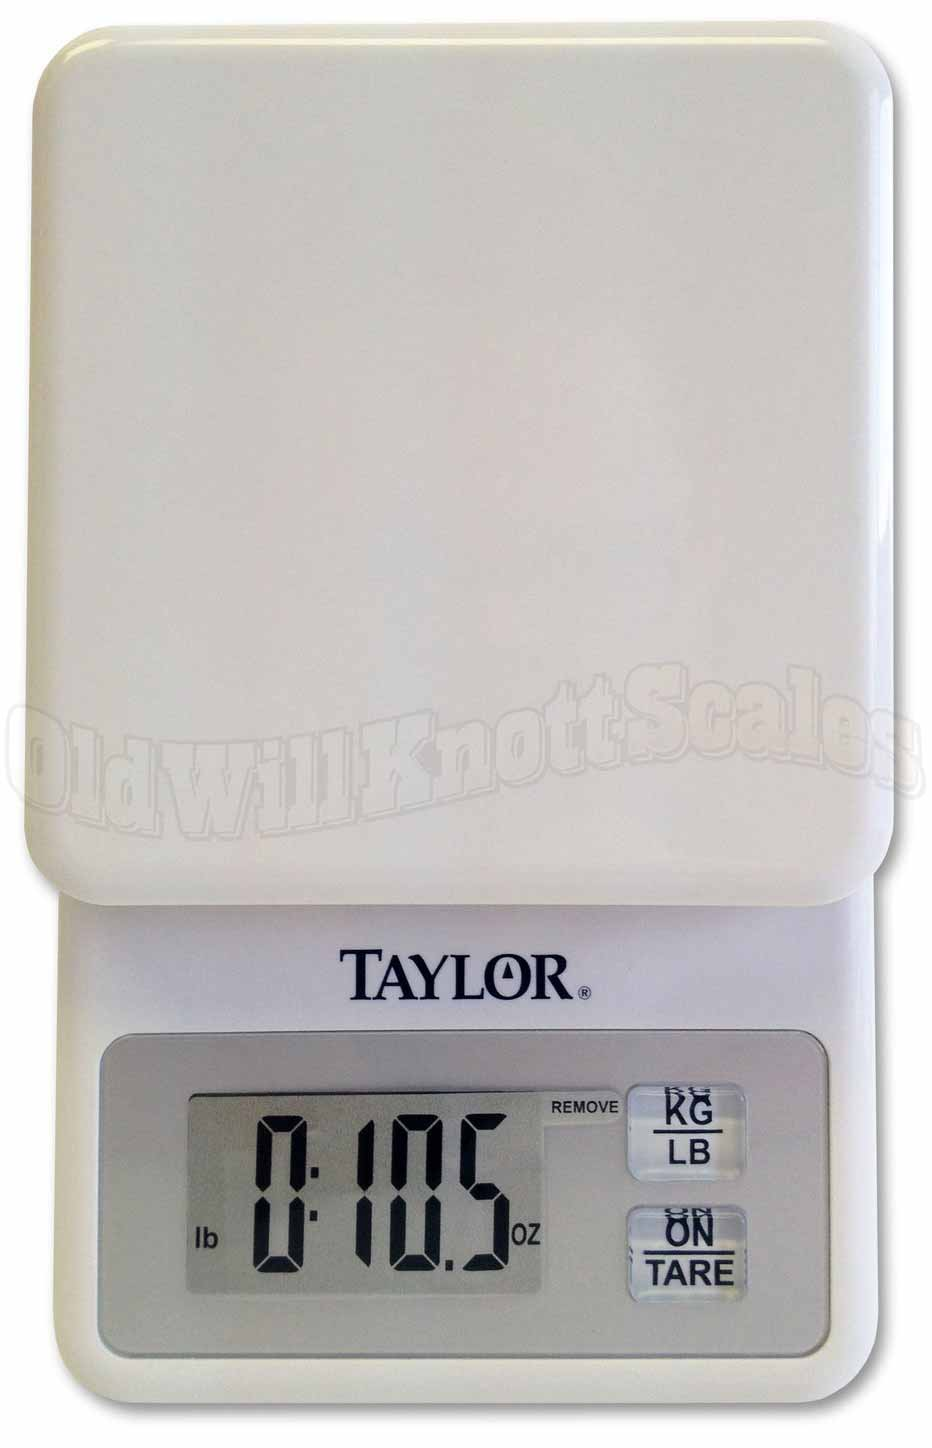 Taylor 3817 White Compact Digital Kitchen Scale